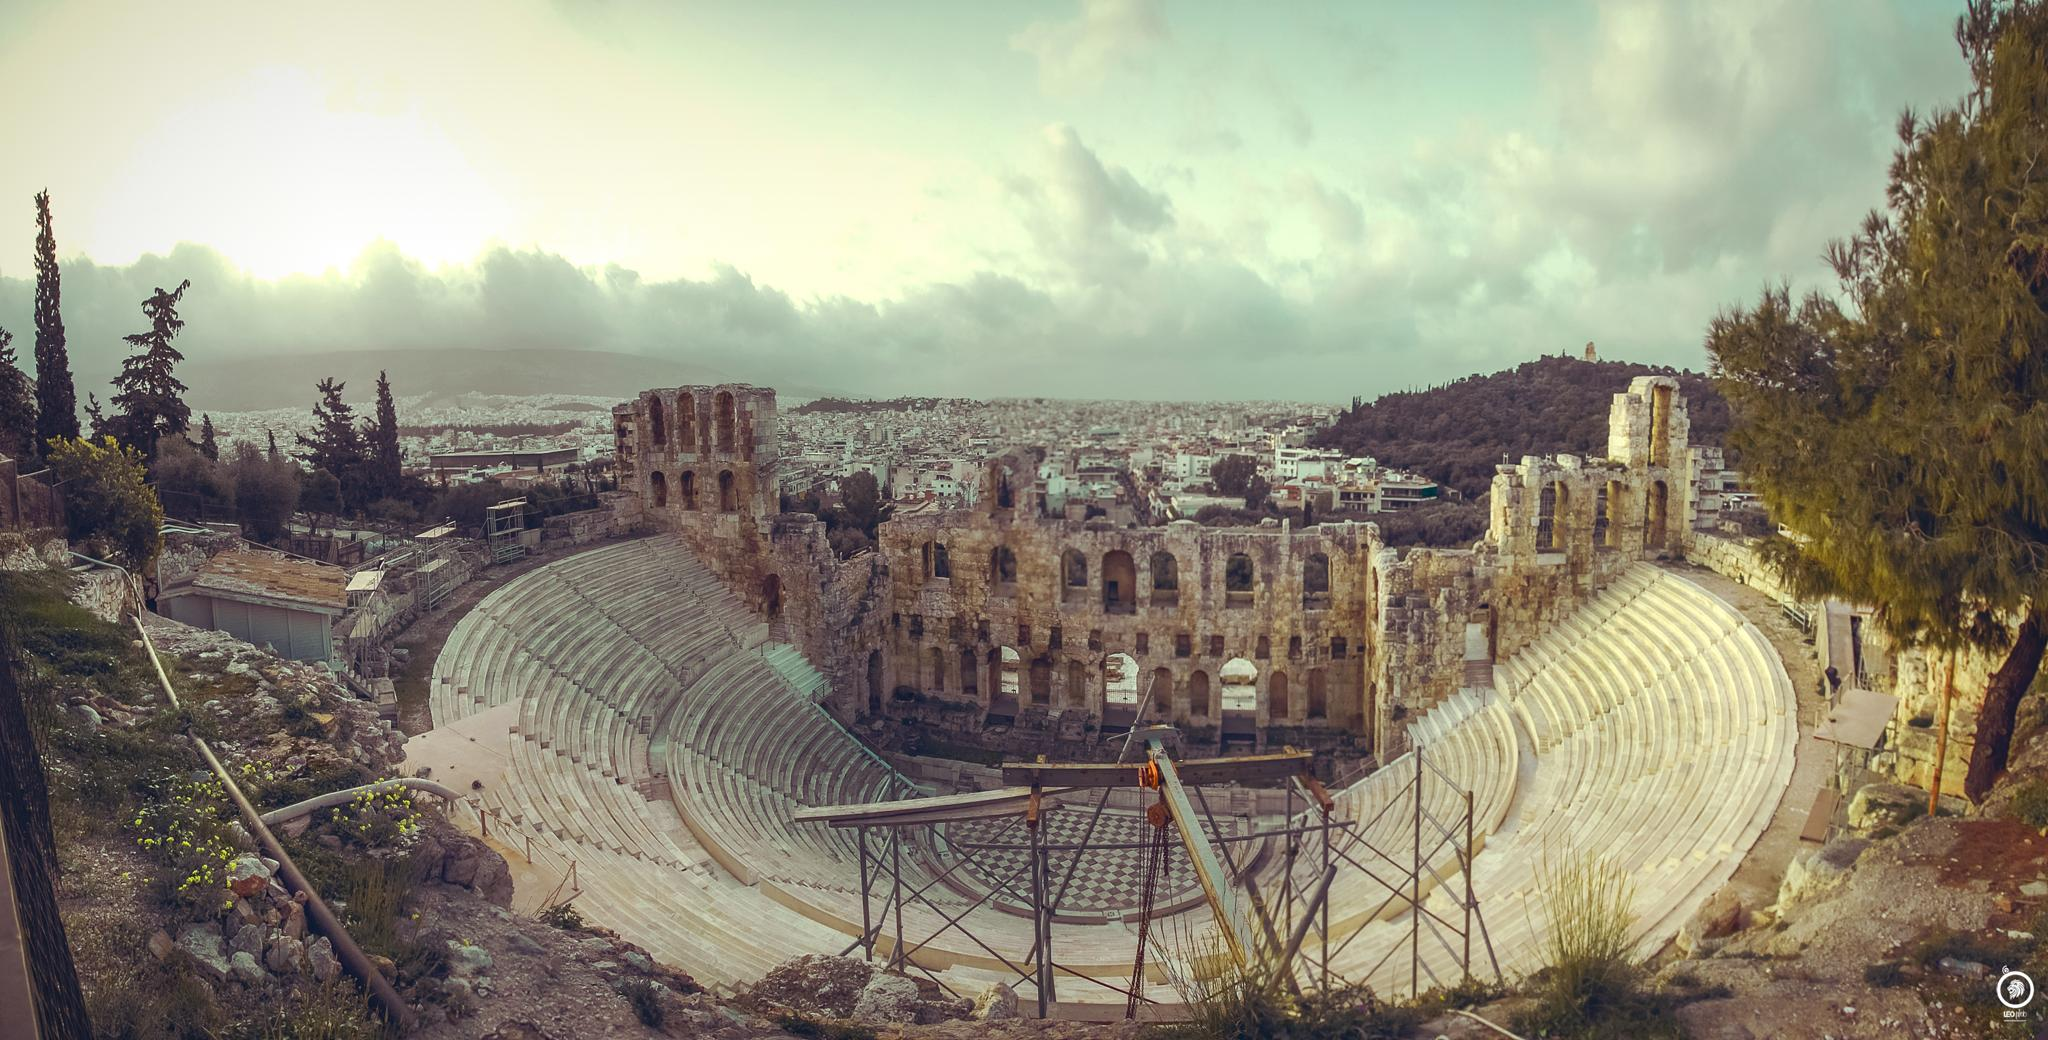 Odeon of Herodes Atticus by Leo Photography